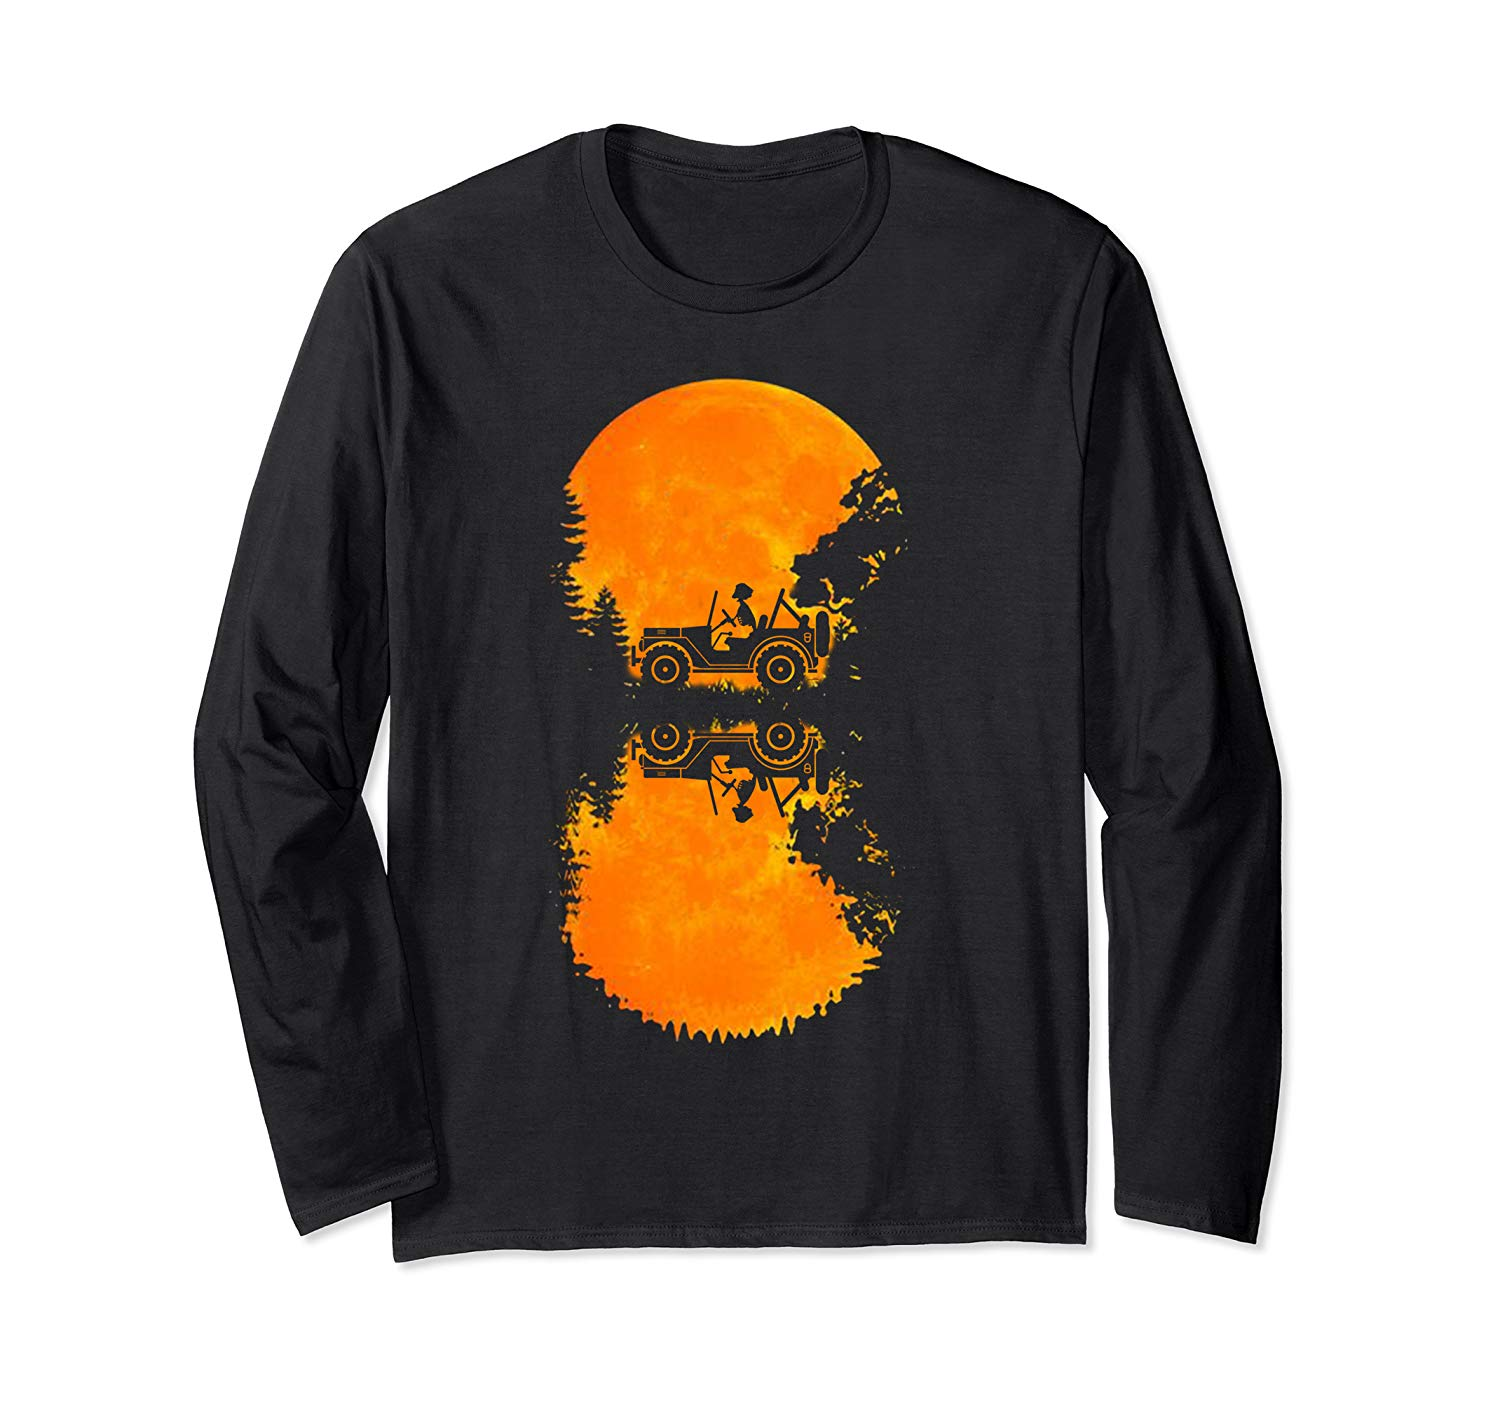 The Jeeps Driver In The Moon Halloween Shirt T Shirt